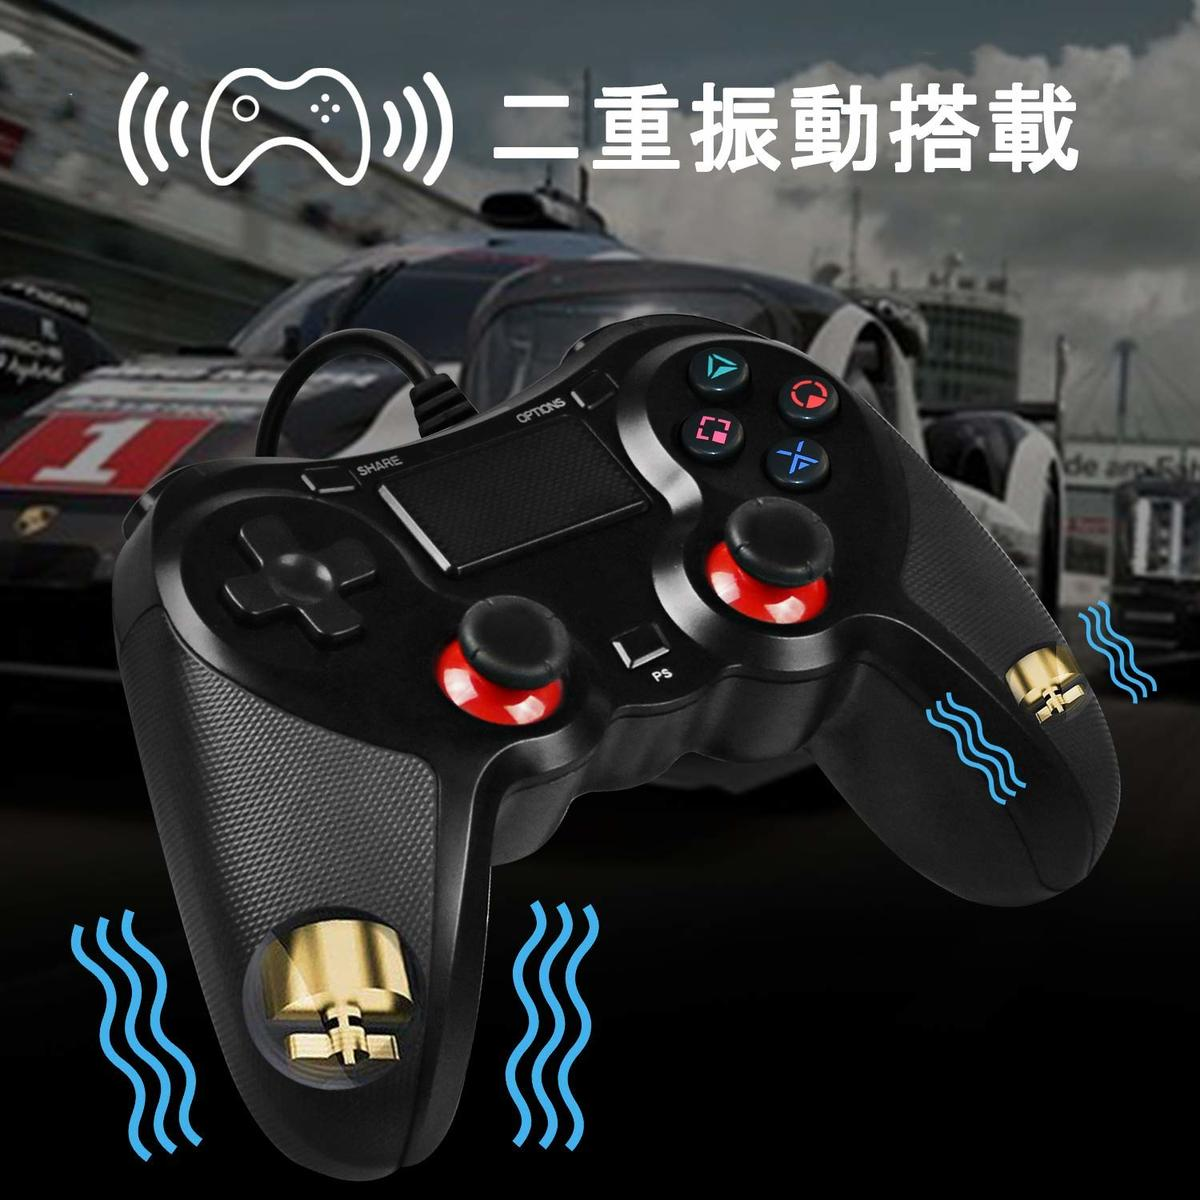 It supports PS4 controller PS3 PC-adaptive HD vibration game controller USB  cable broadcasting high durability button most recent version 6 51